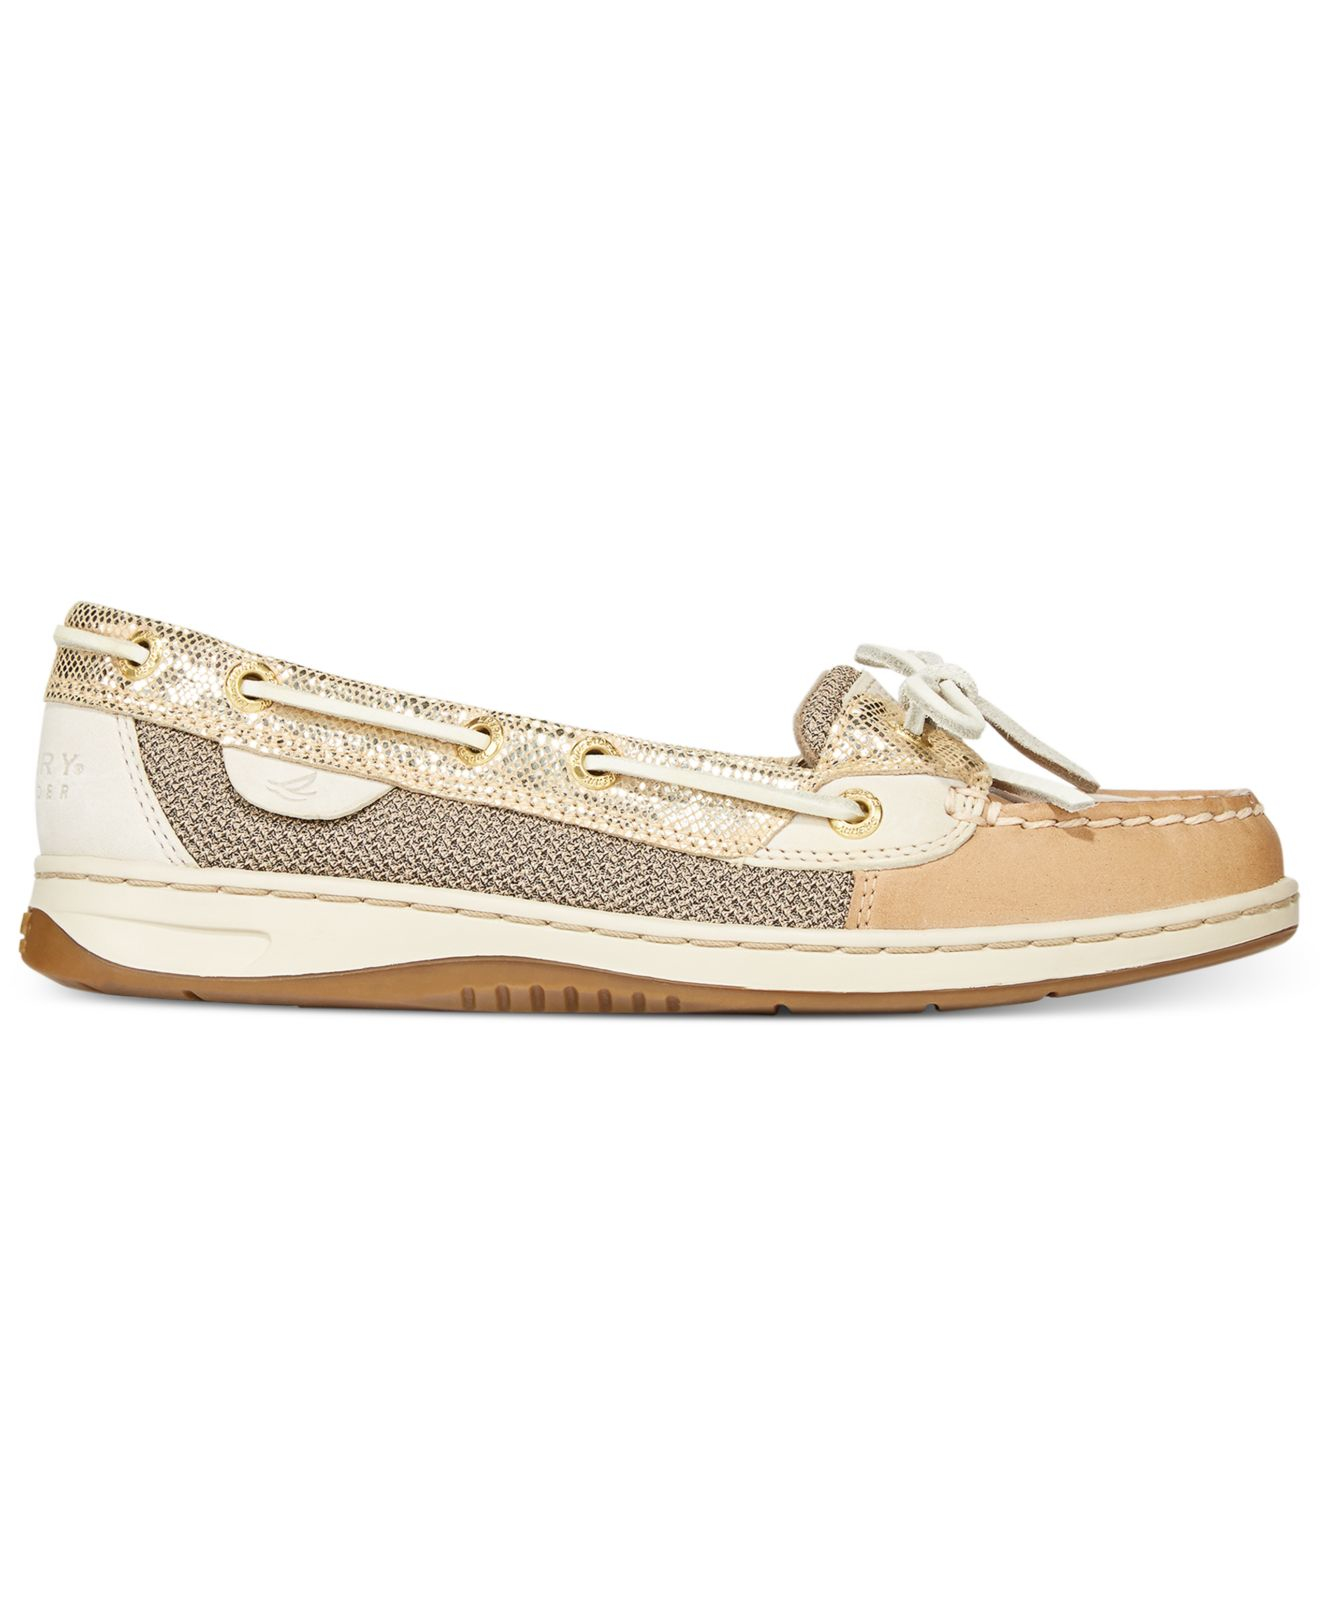 826275fc596b Lyst - Sperry Top-Sider Women s Angelfish Metallic Boat Shoes in ...